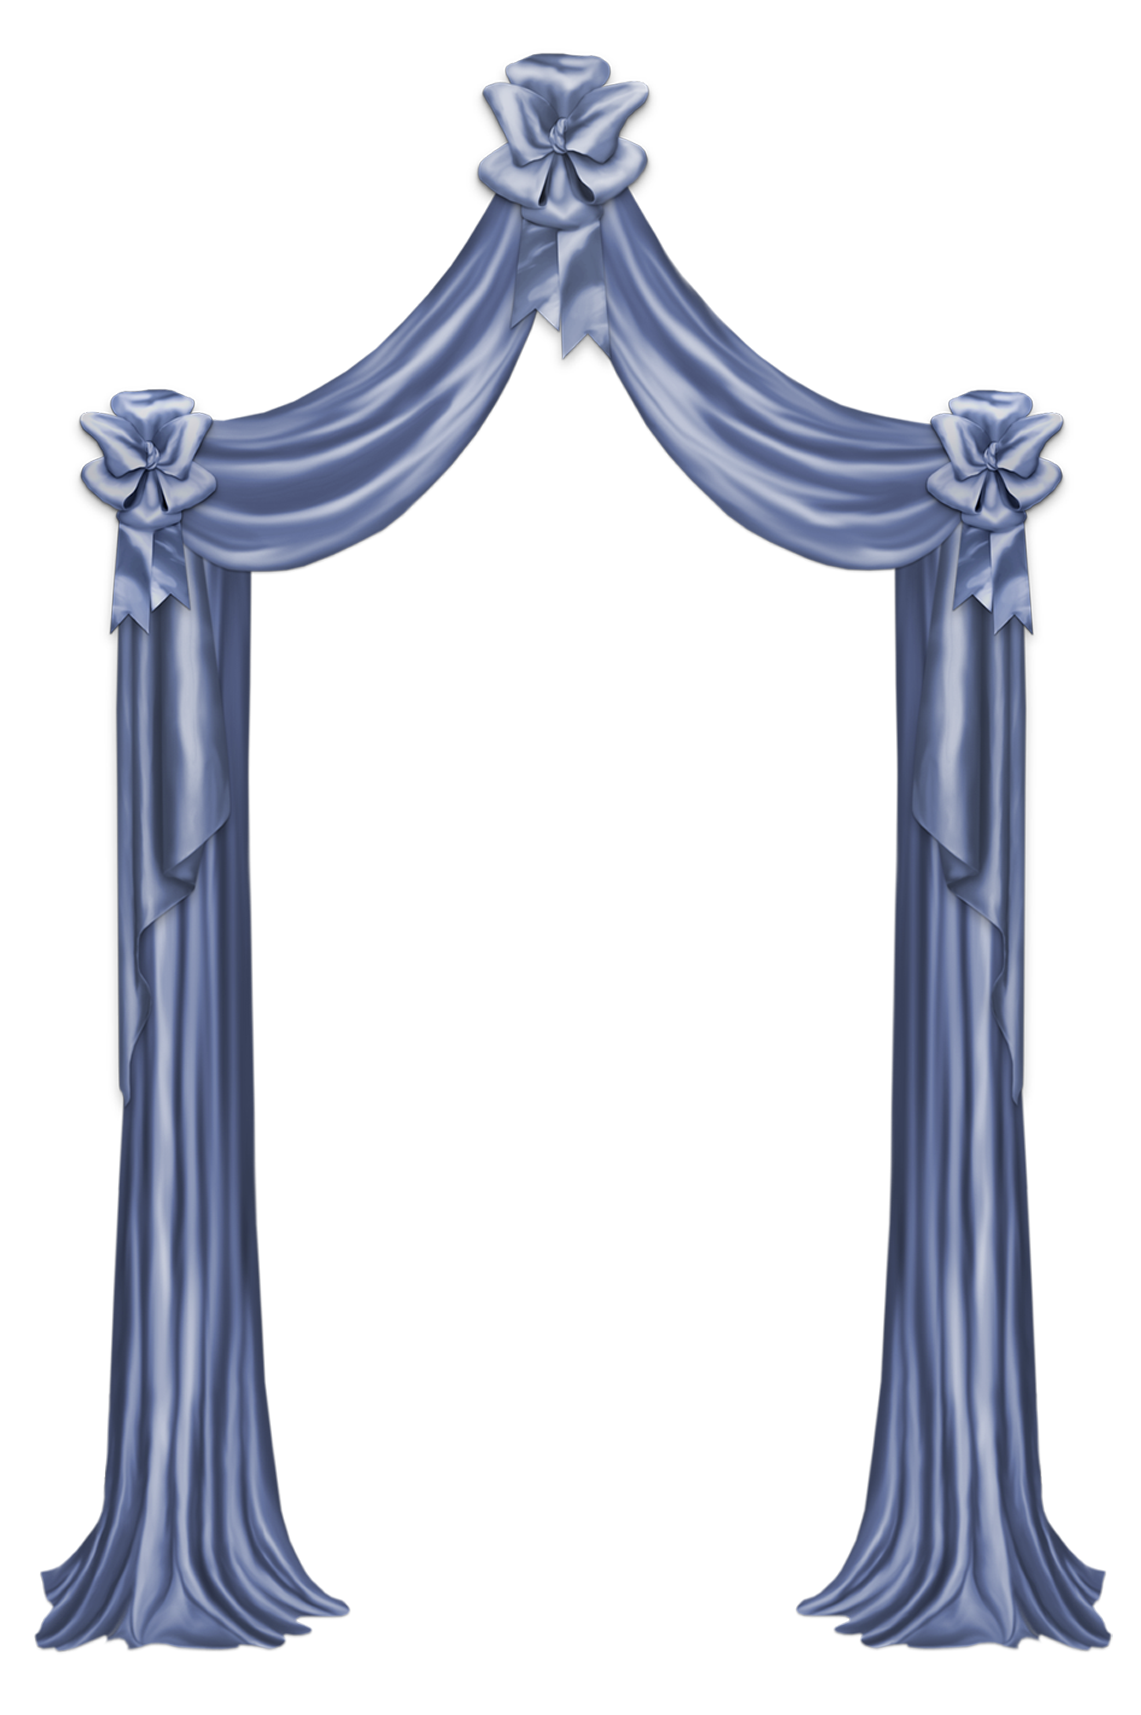 Clipart bed blue. Curtain decor png picture